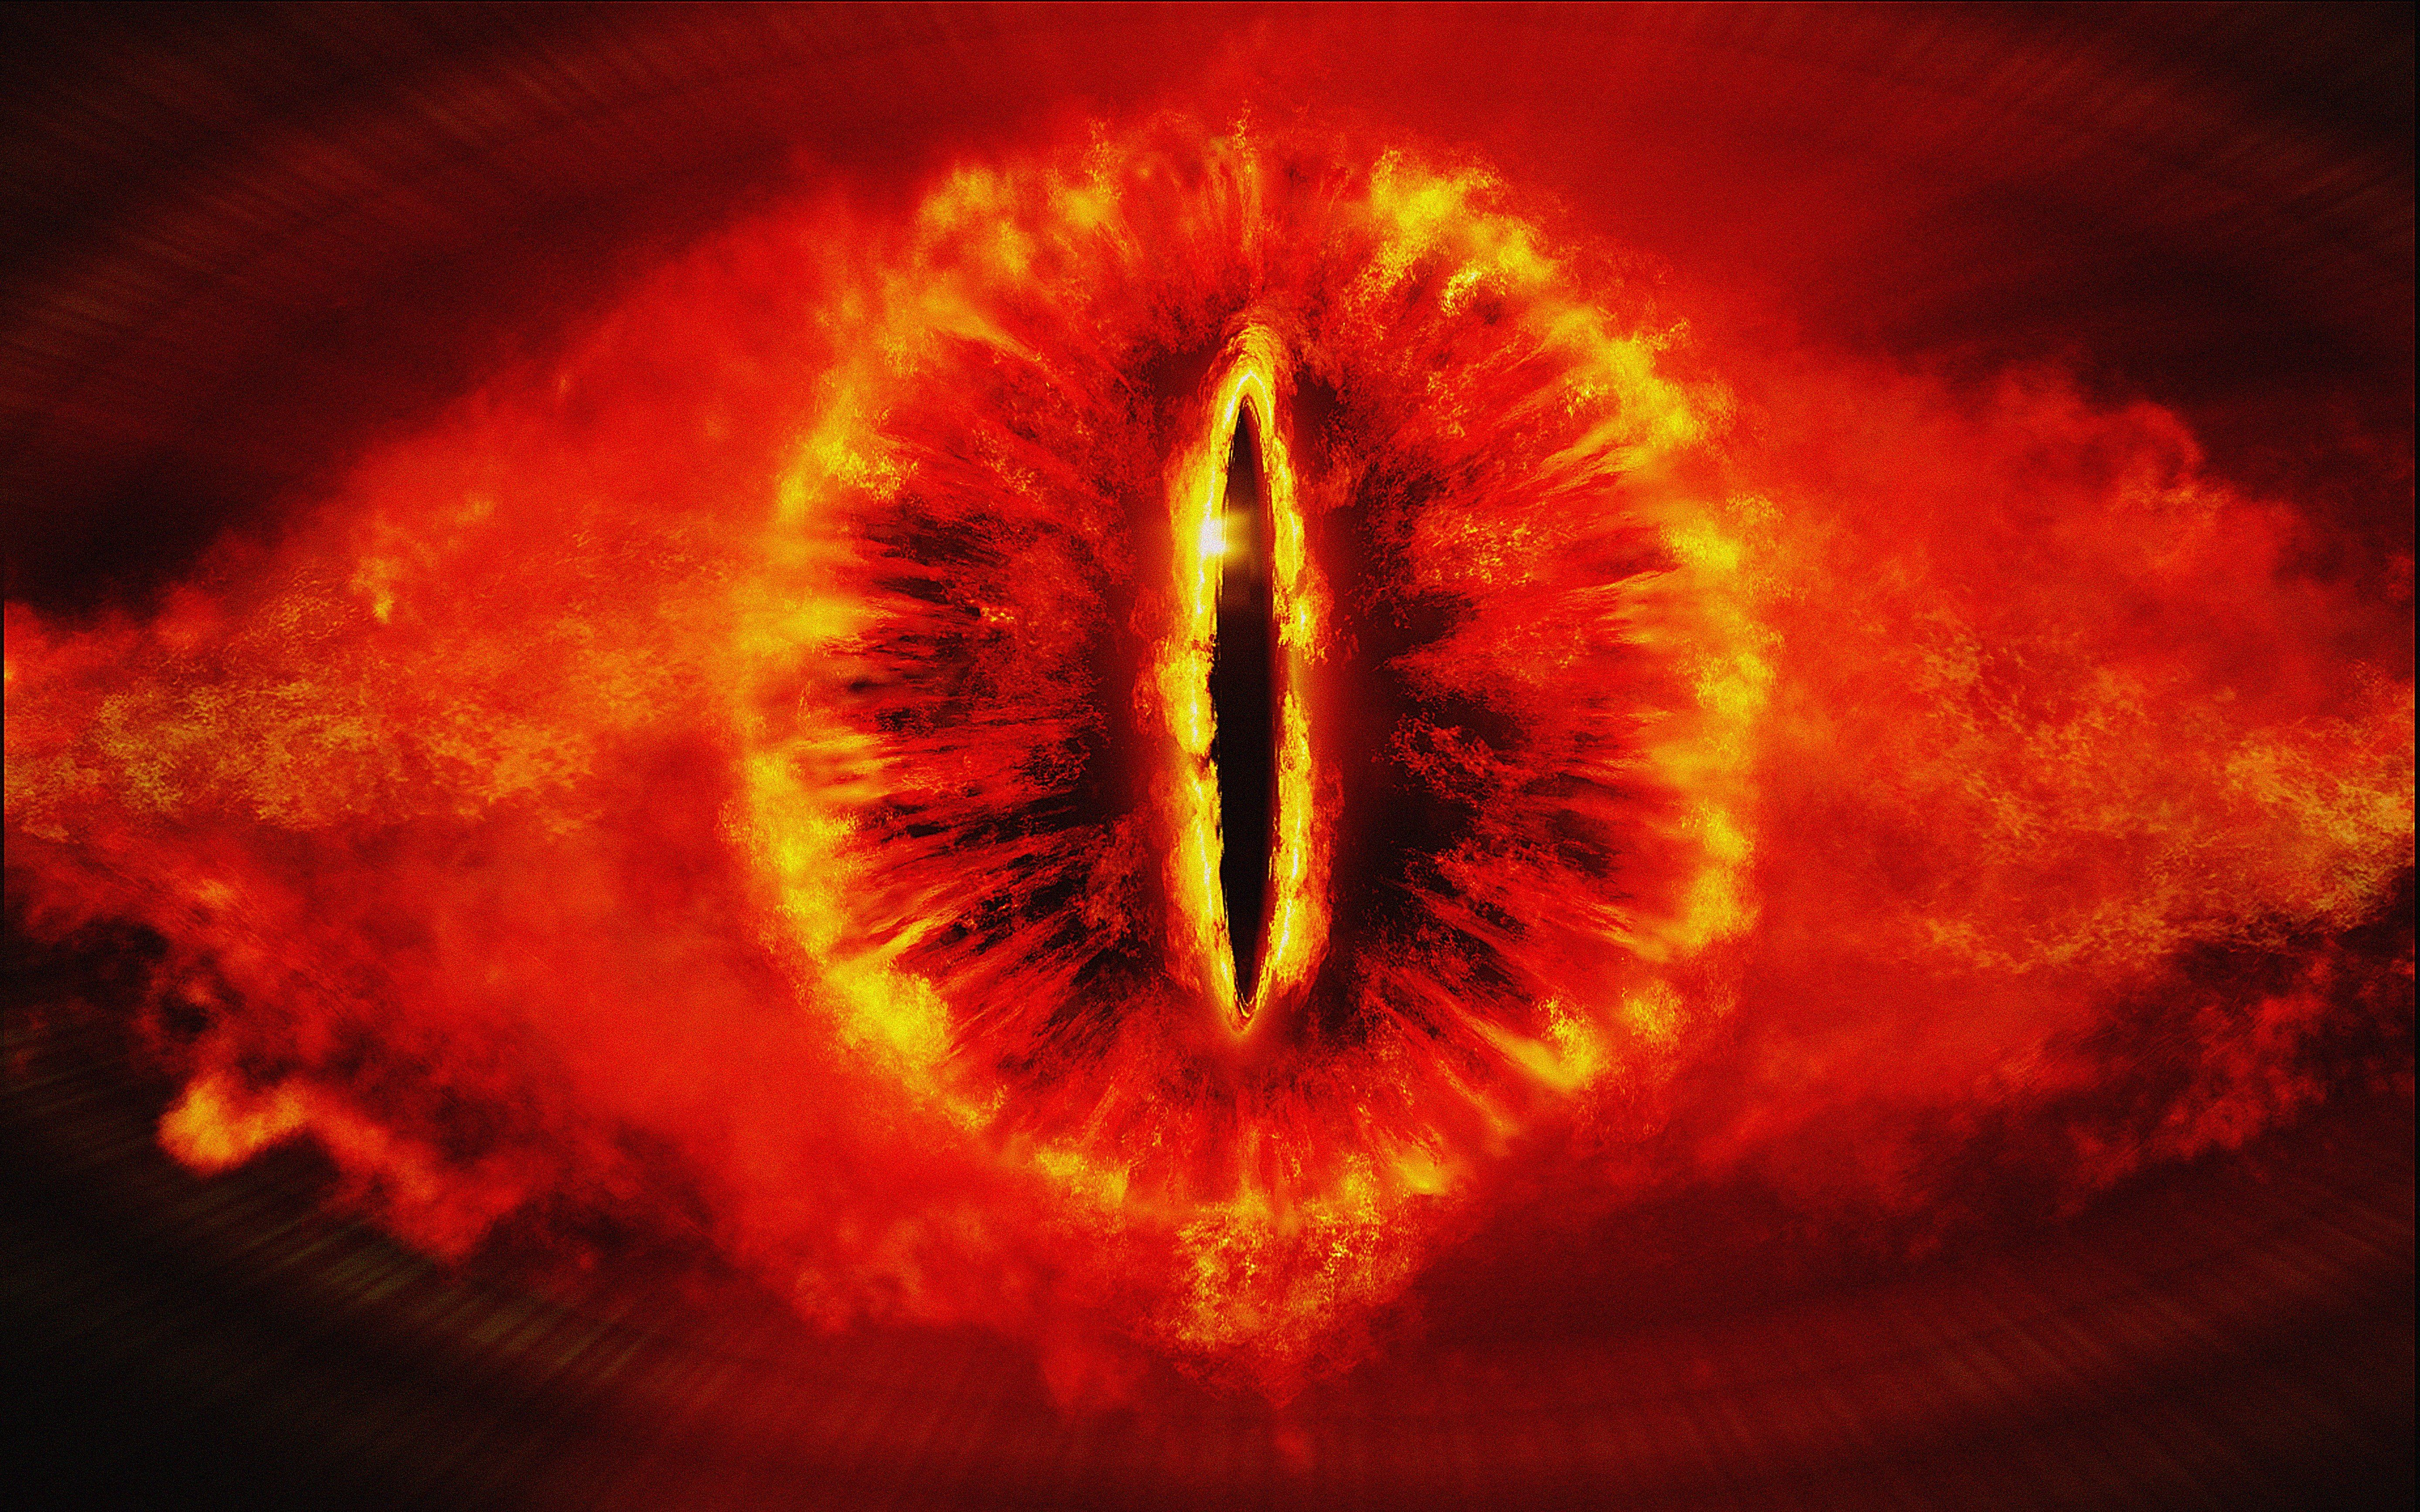 Download Wallpaper Eyes The Lord Of The Rings The Eye Of Sauron Lord Of The Rings Tolkien Dark Lord Morgoth